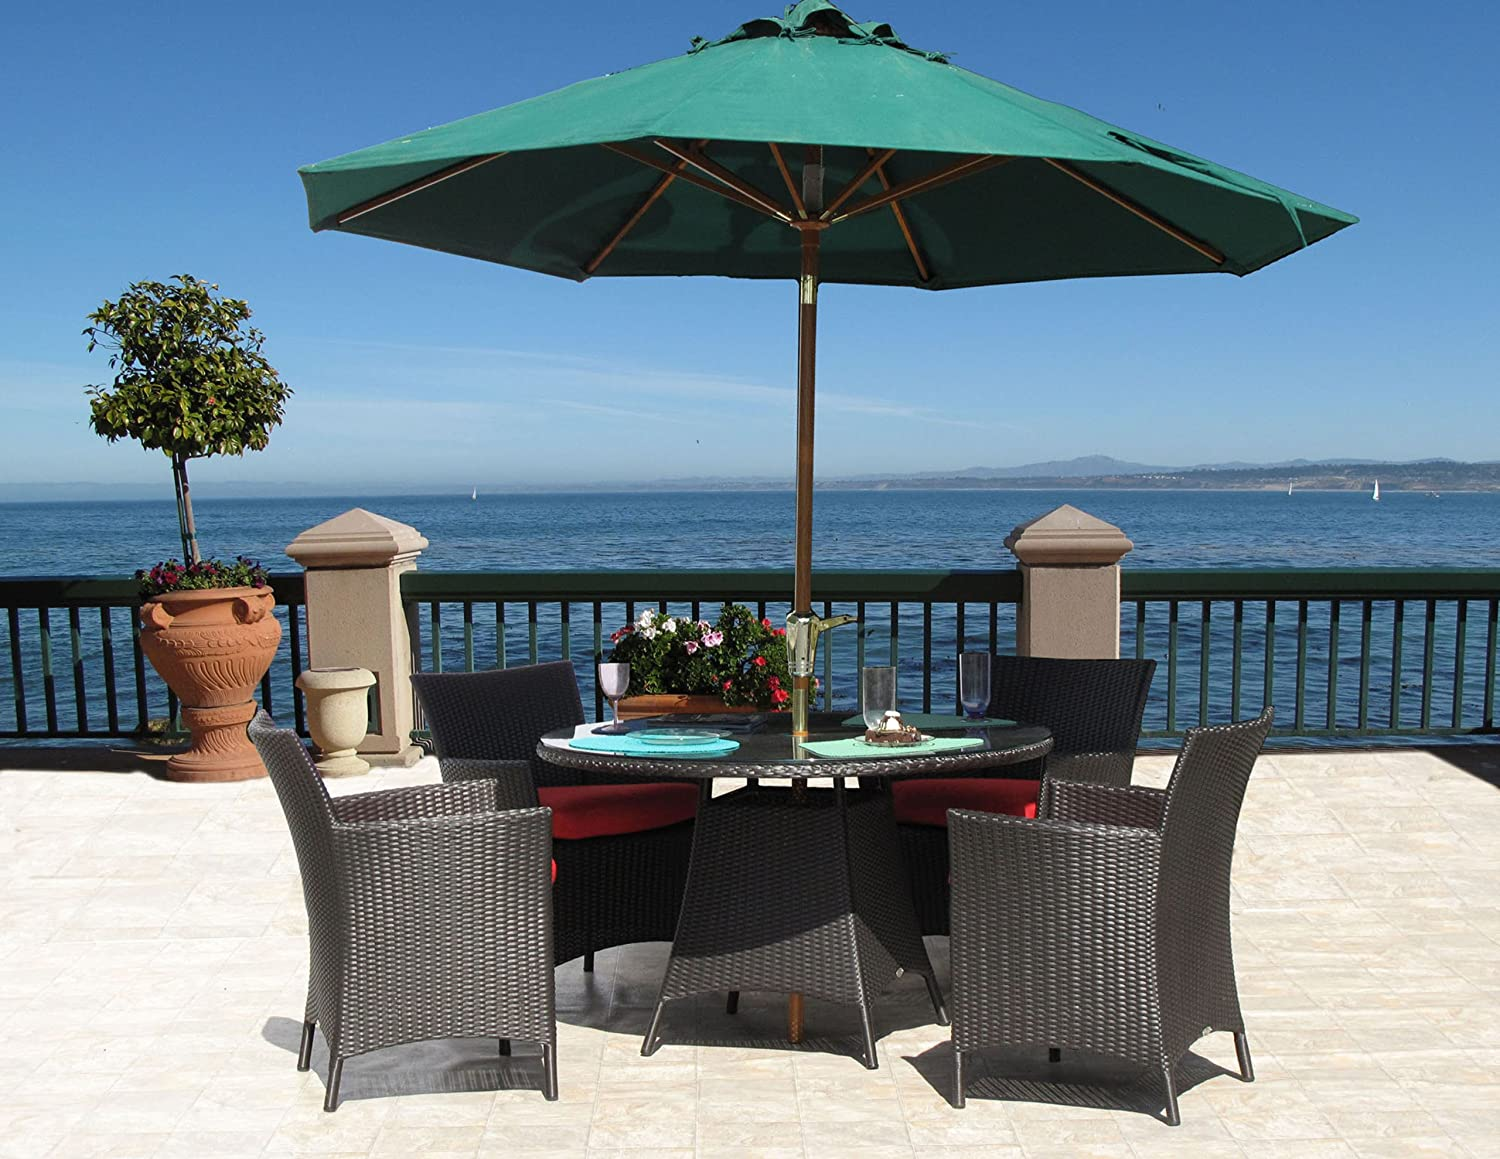 Amazon.com : Hudson Outdoor Resin Wicker 5 PC Dining Set Sunbrella Cushions  (12 Fabric Choices) Assembled With Warranty : Outdoor And Patio Furniture  Sets ...